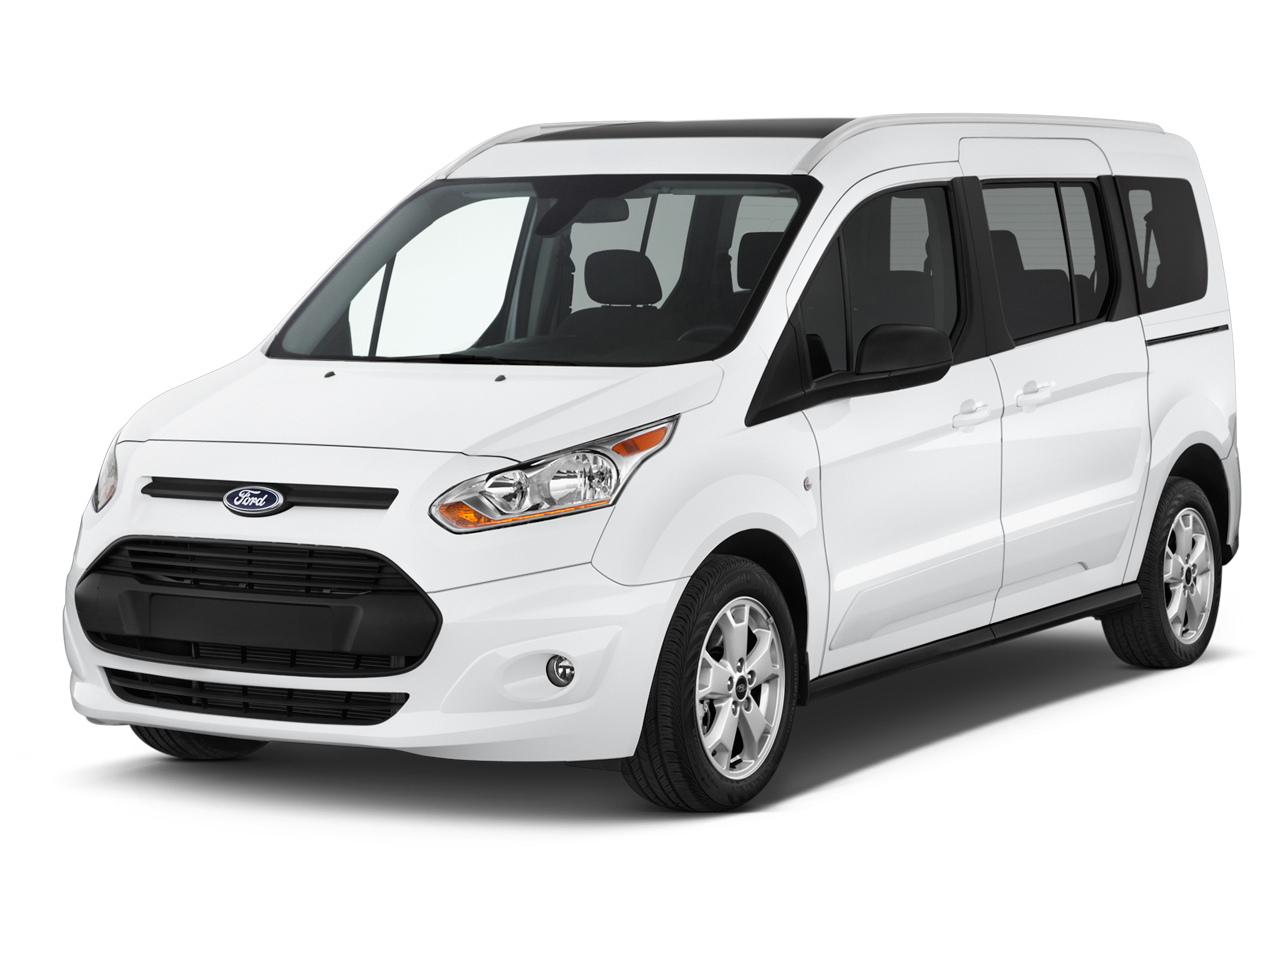 2016 Ford Transit Connect Wagon Review Ratings Specs Prices And Photos The Car Connection